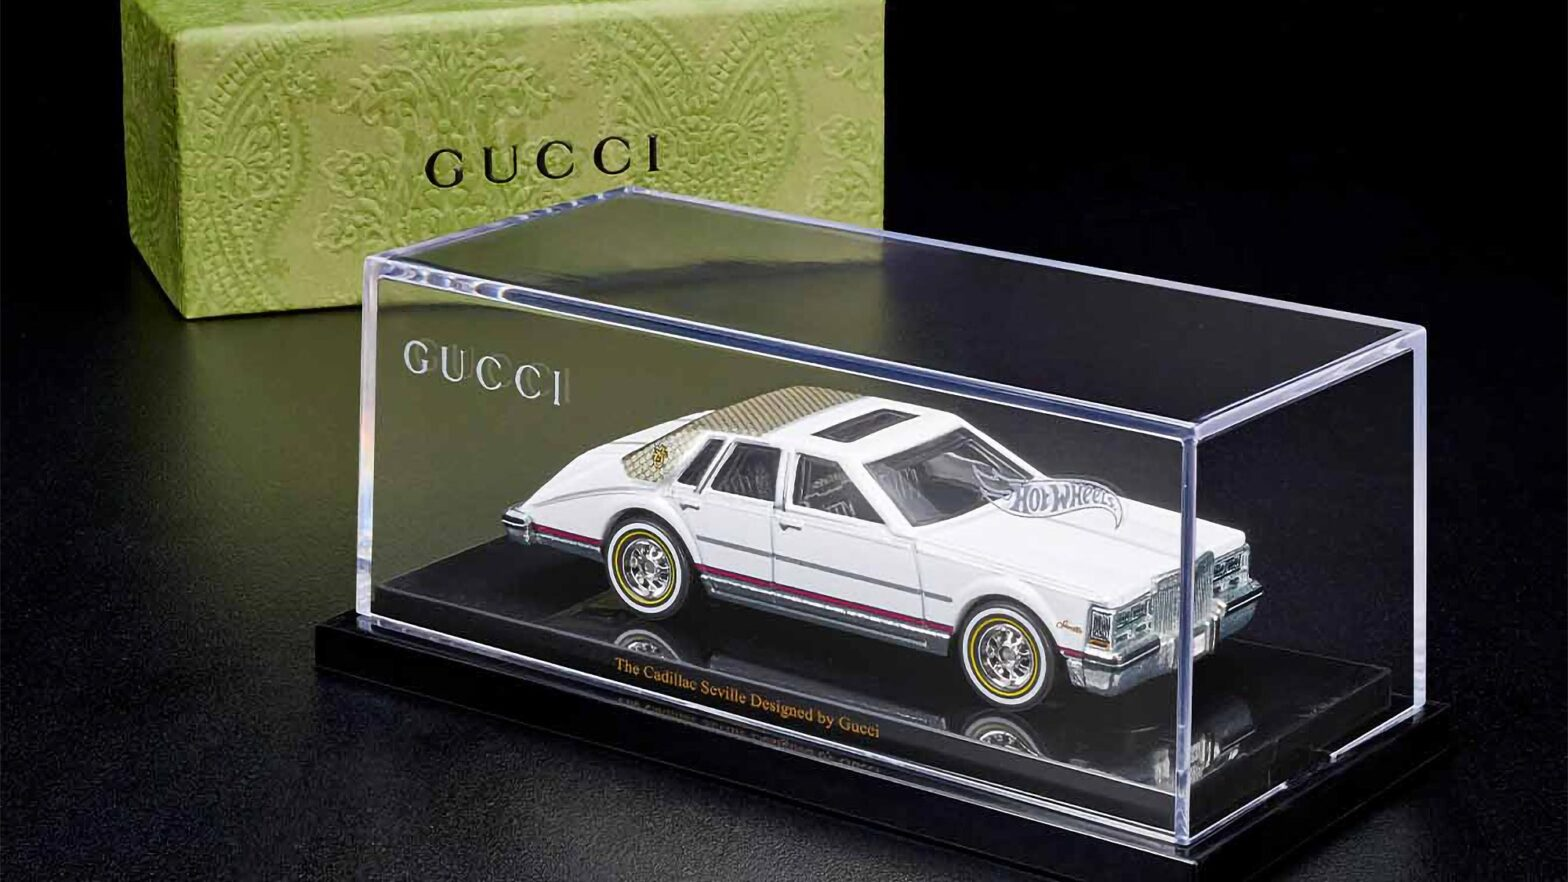 Hot Wheels The Cadillac Seville Designed by Gucci